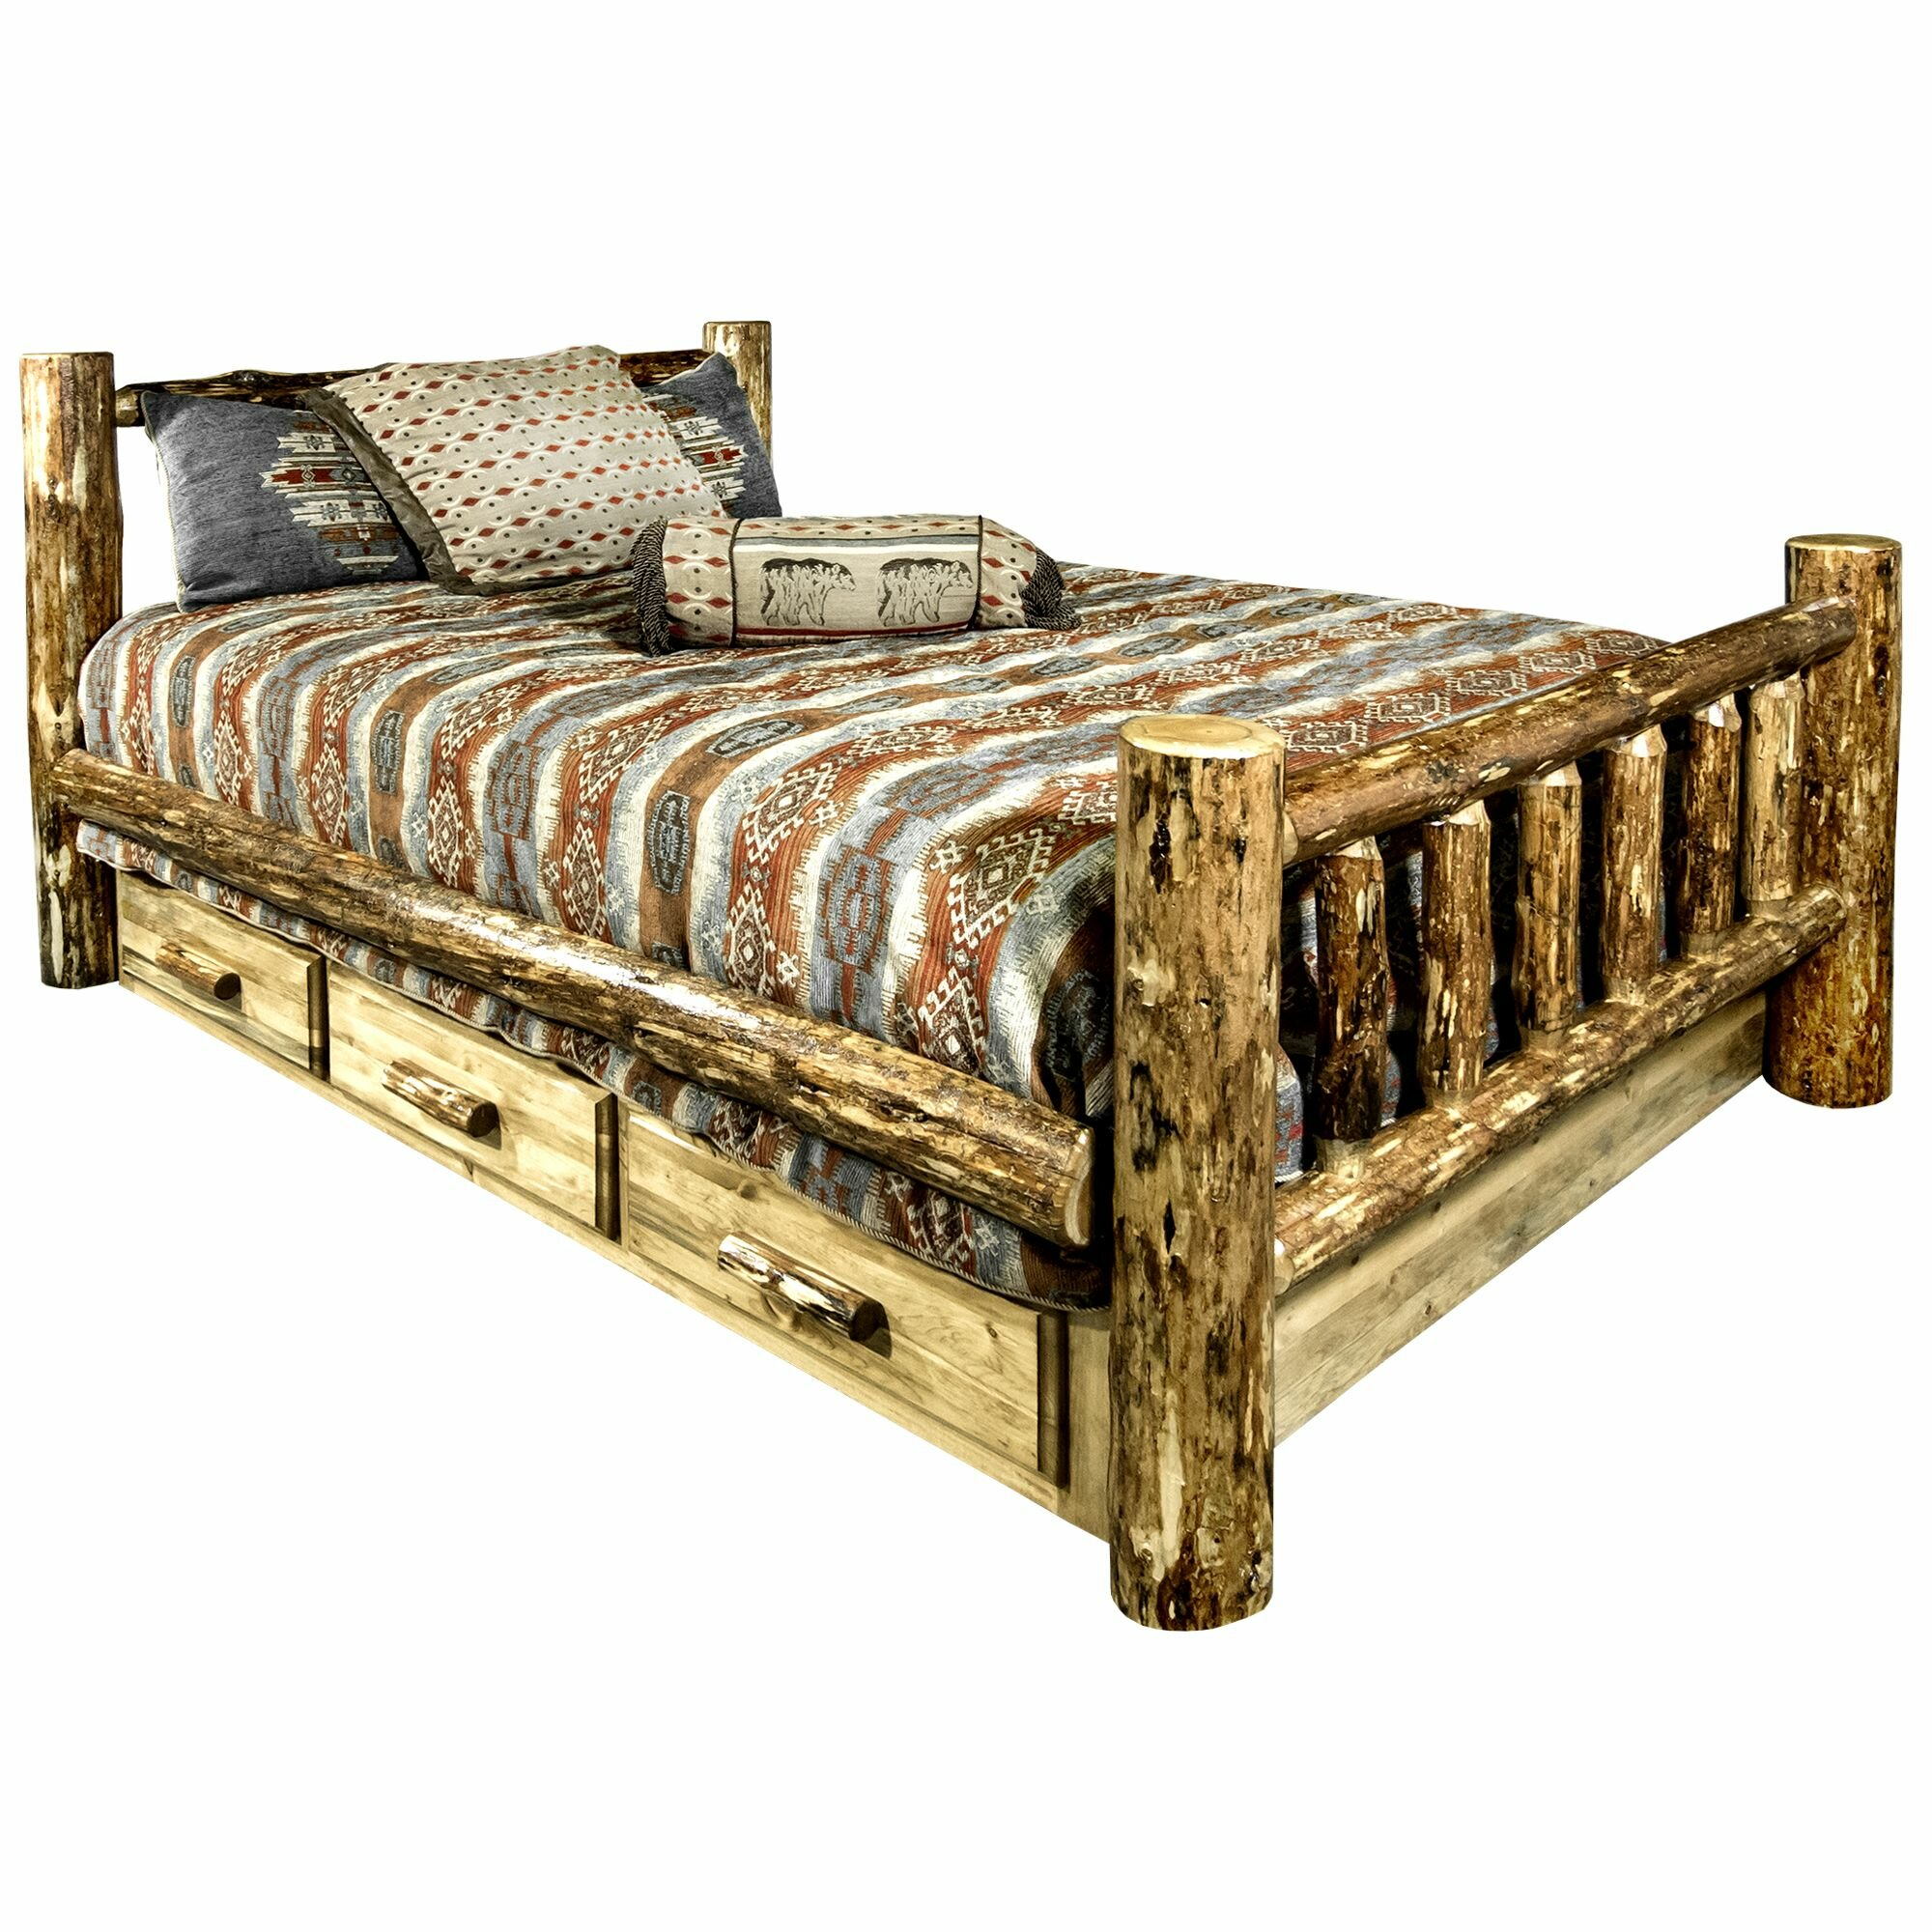 Loon Peak Tustin Solid Wood Storage Standard Bed Reviews Wayfair